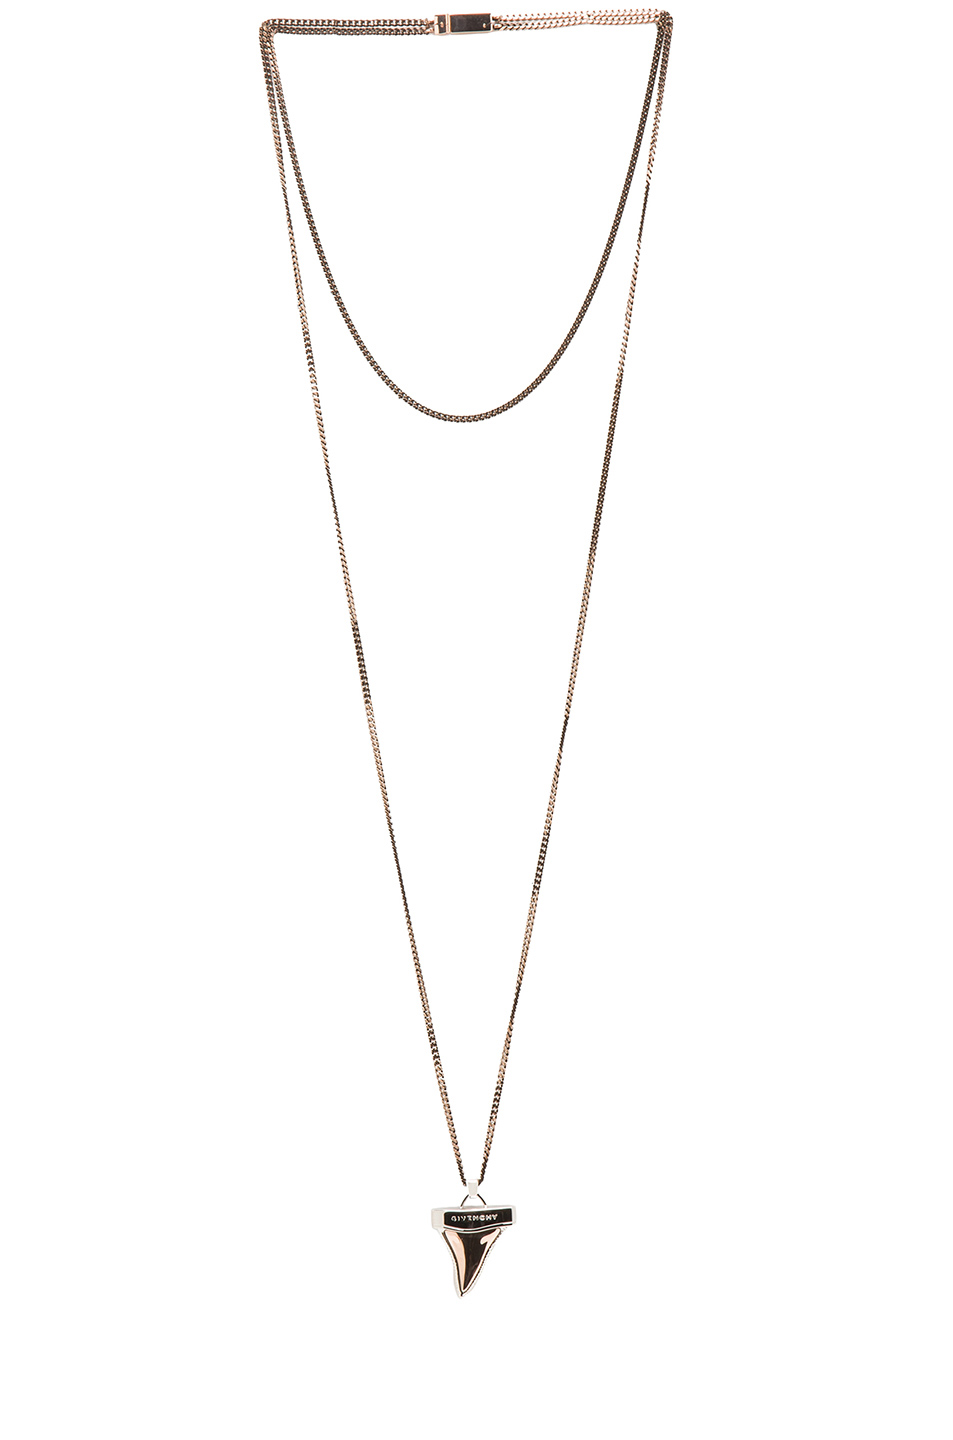 GIVENCHY | Small Shark Tooth Necklace in Old Pink & Silver